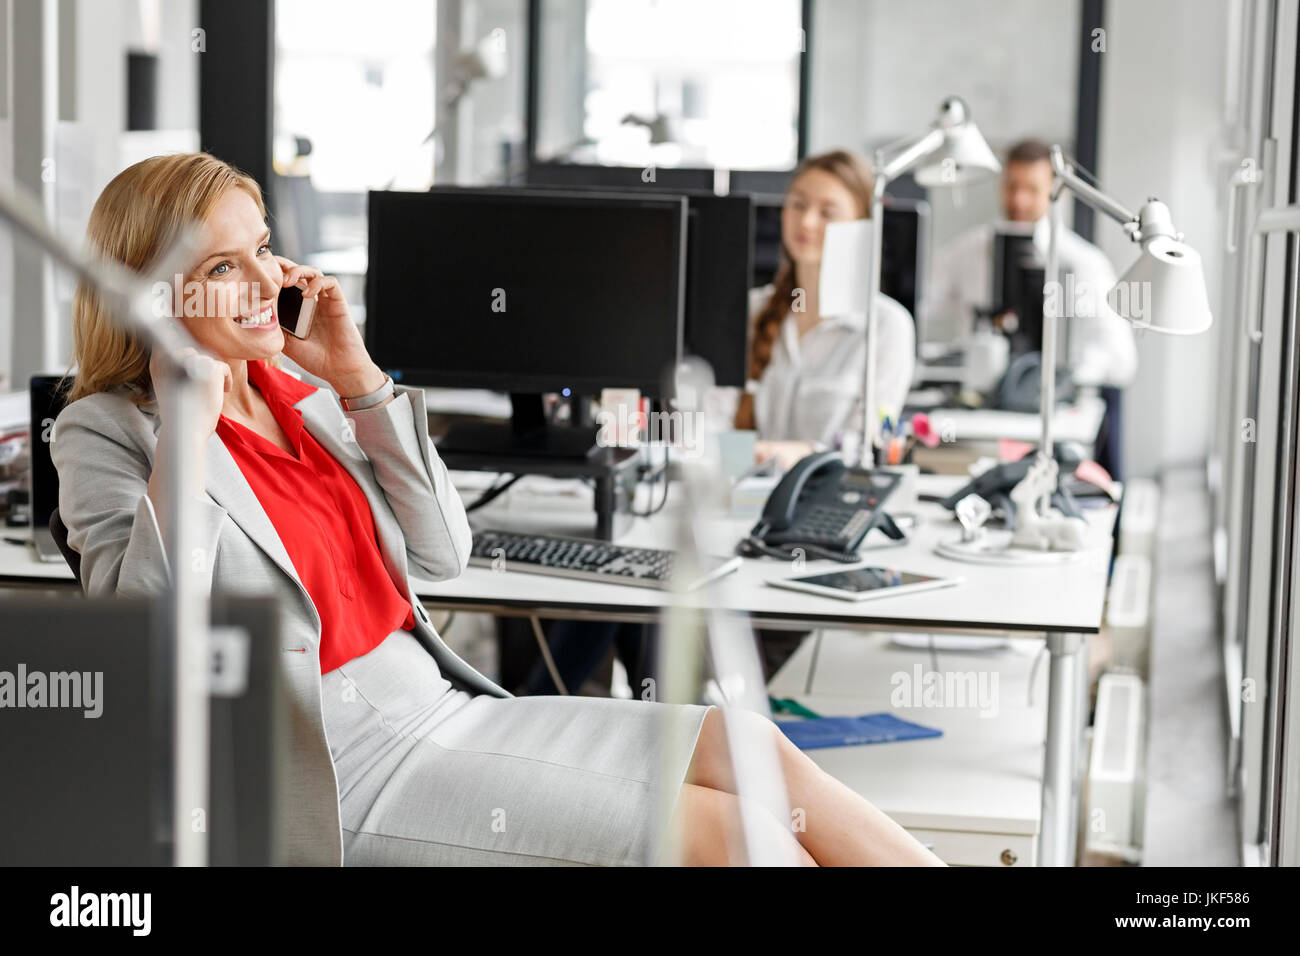 Businesswoman at desk in office on cell phone Photo Stock